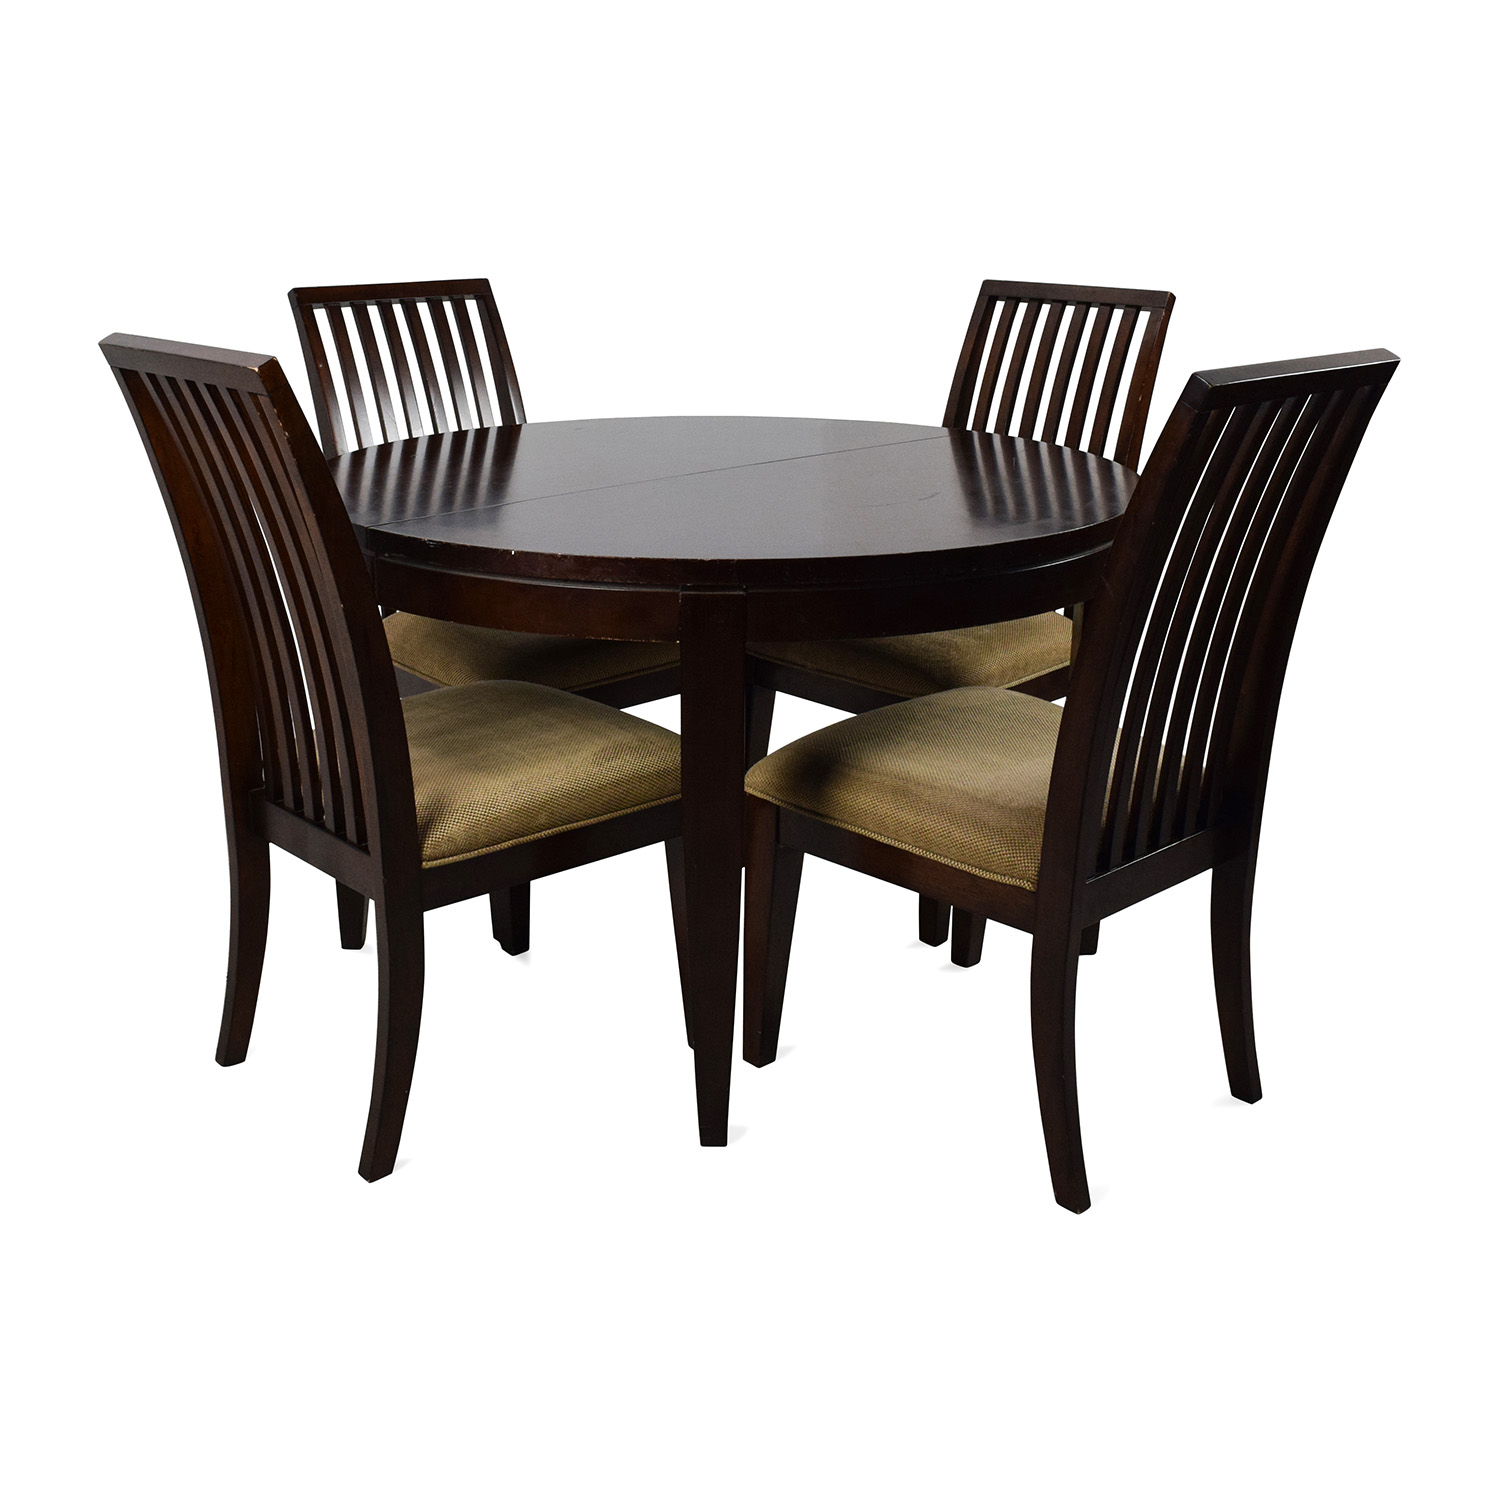 Macys Bradford Extendable Dining Table With 4 Chairs Online